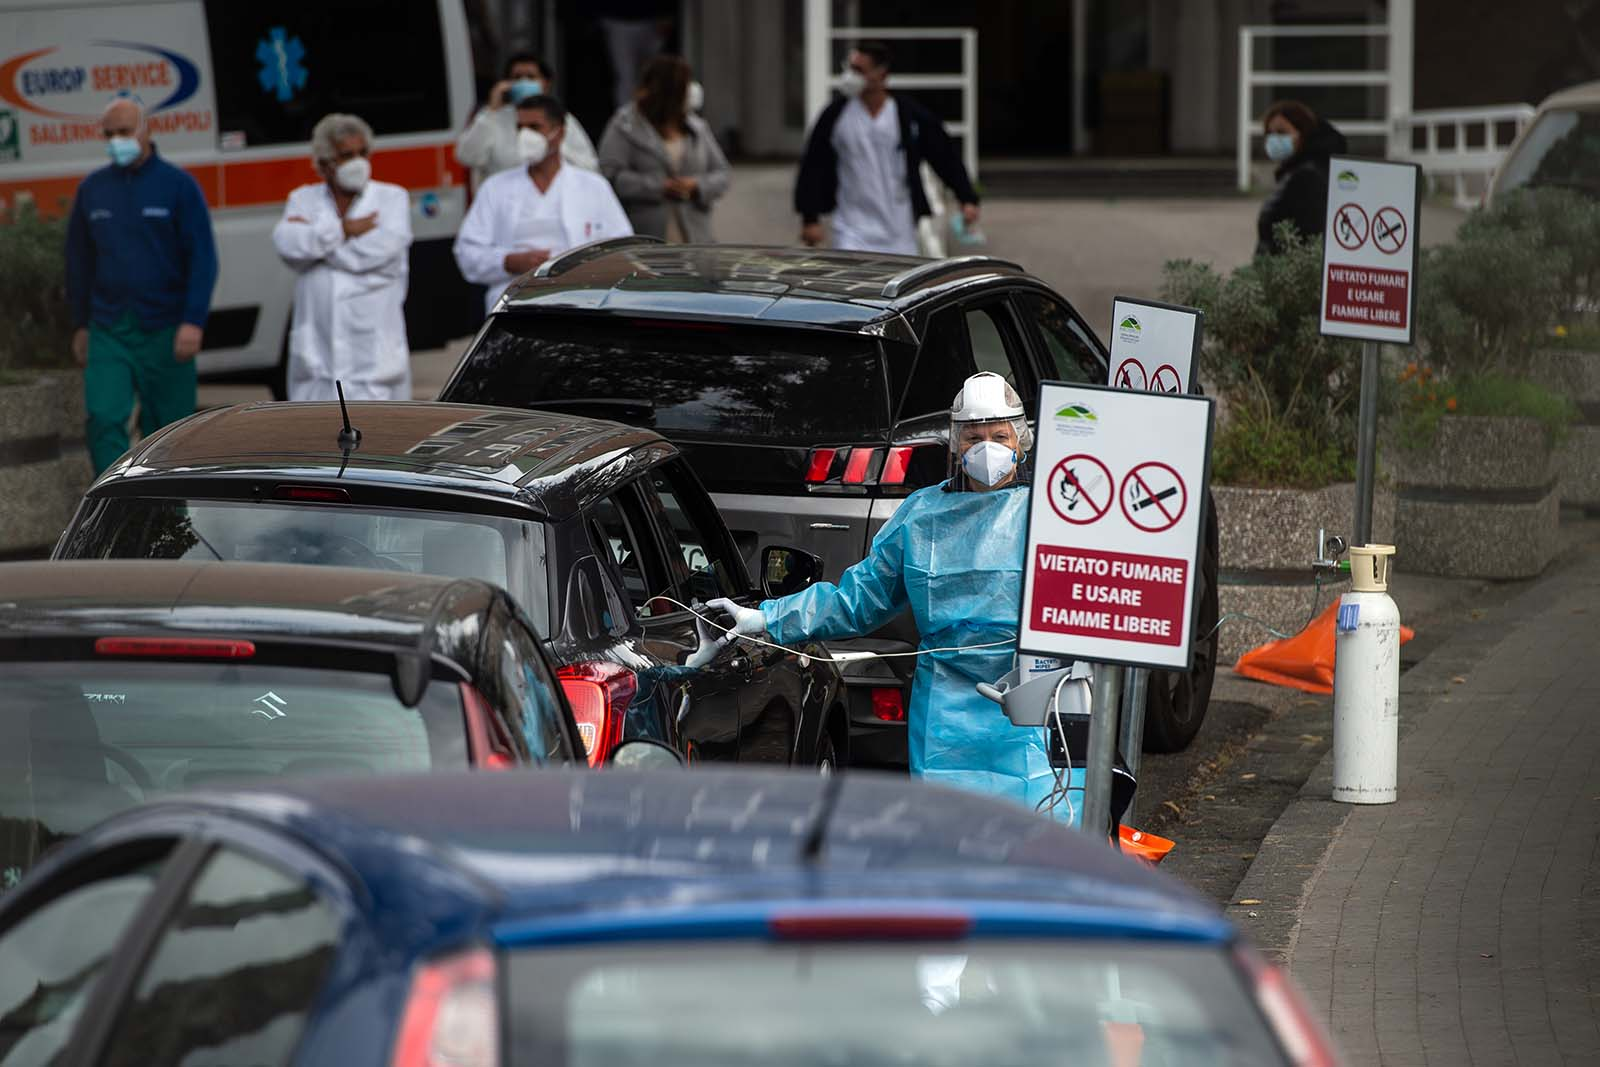 Health workers at Cotugno Hospital carry out pre-triage to a suspected Covid-19 patient on November 12, in Naples, Italy.